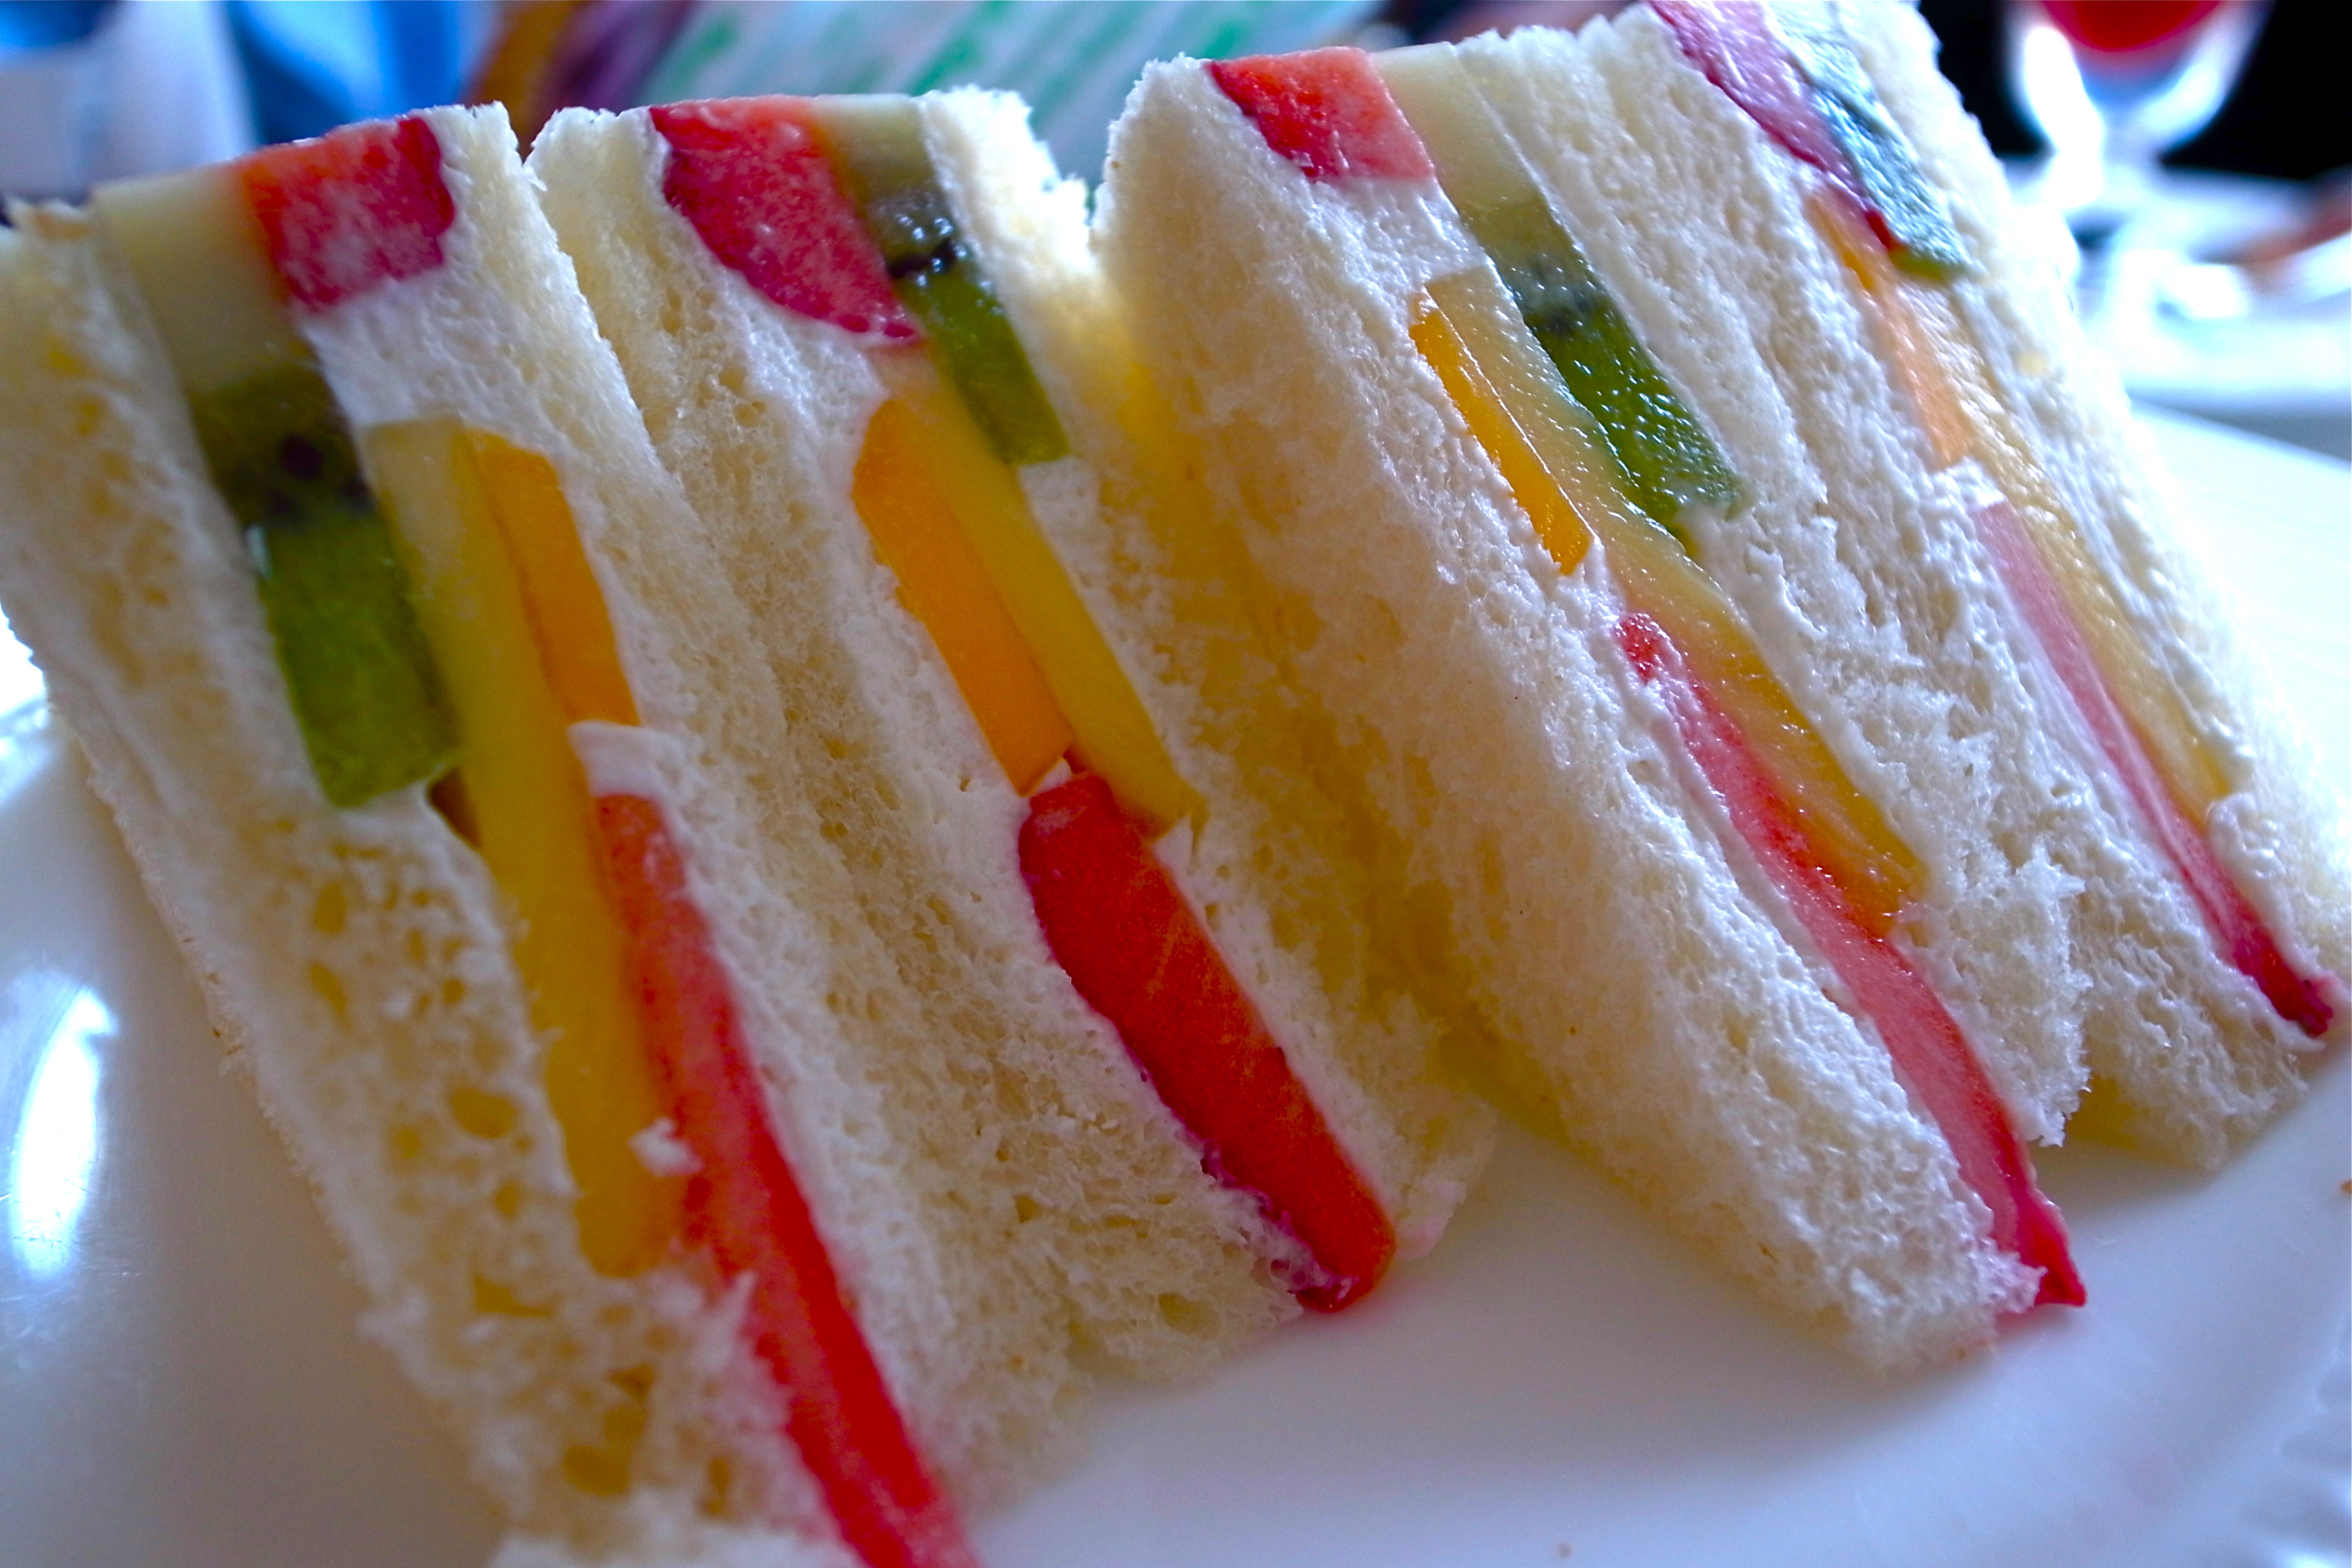 Fruitwiches